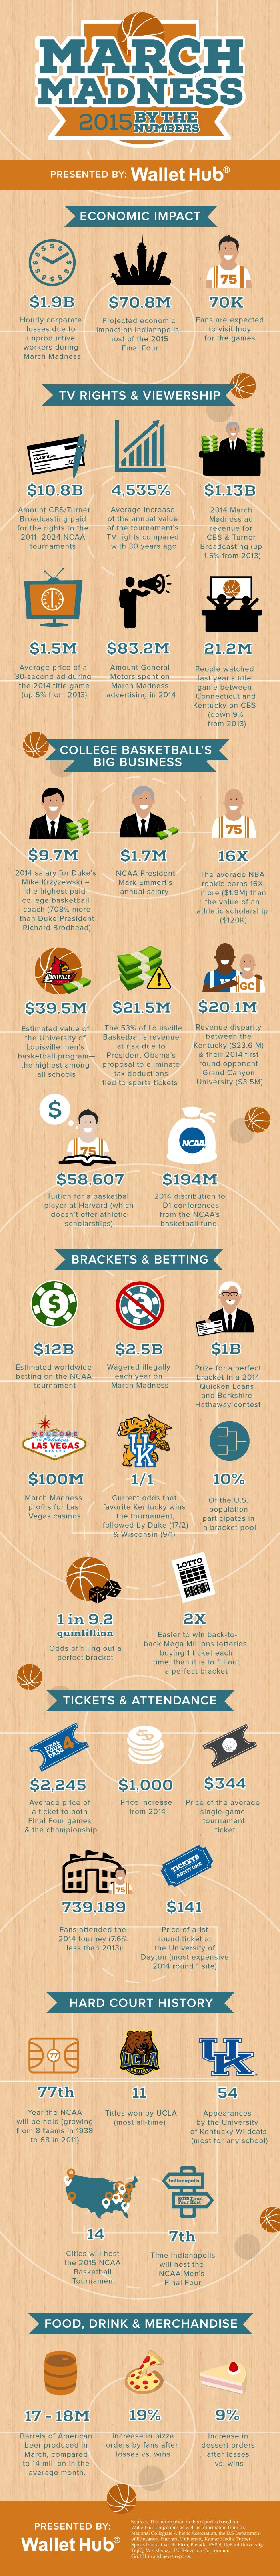 March Madness by the Numbers V9